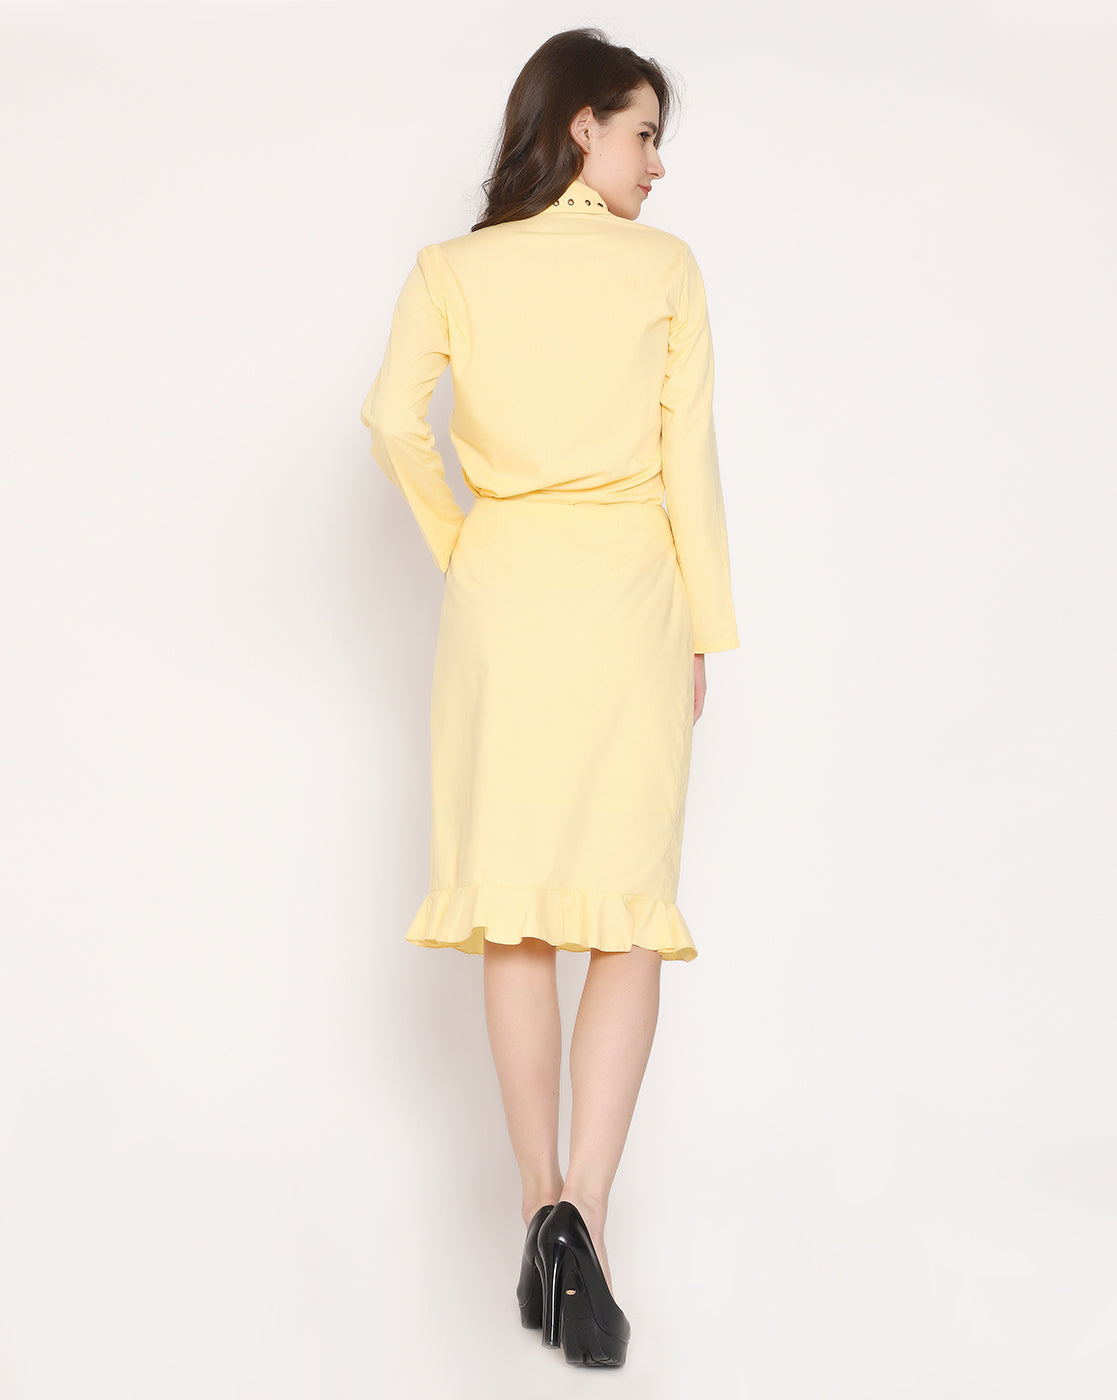 The Raunchy in Ruffle skirt - Buttercup Yellow